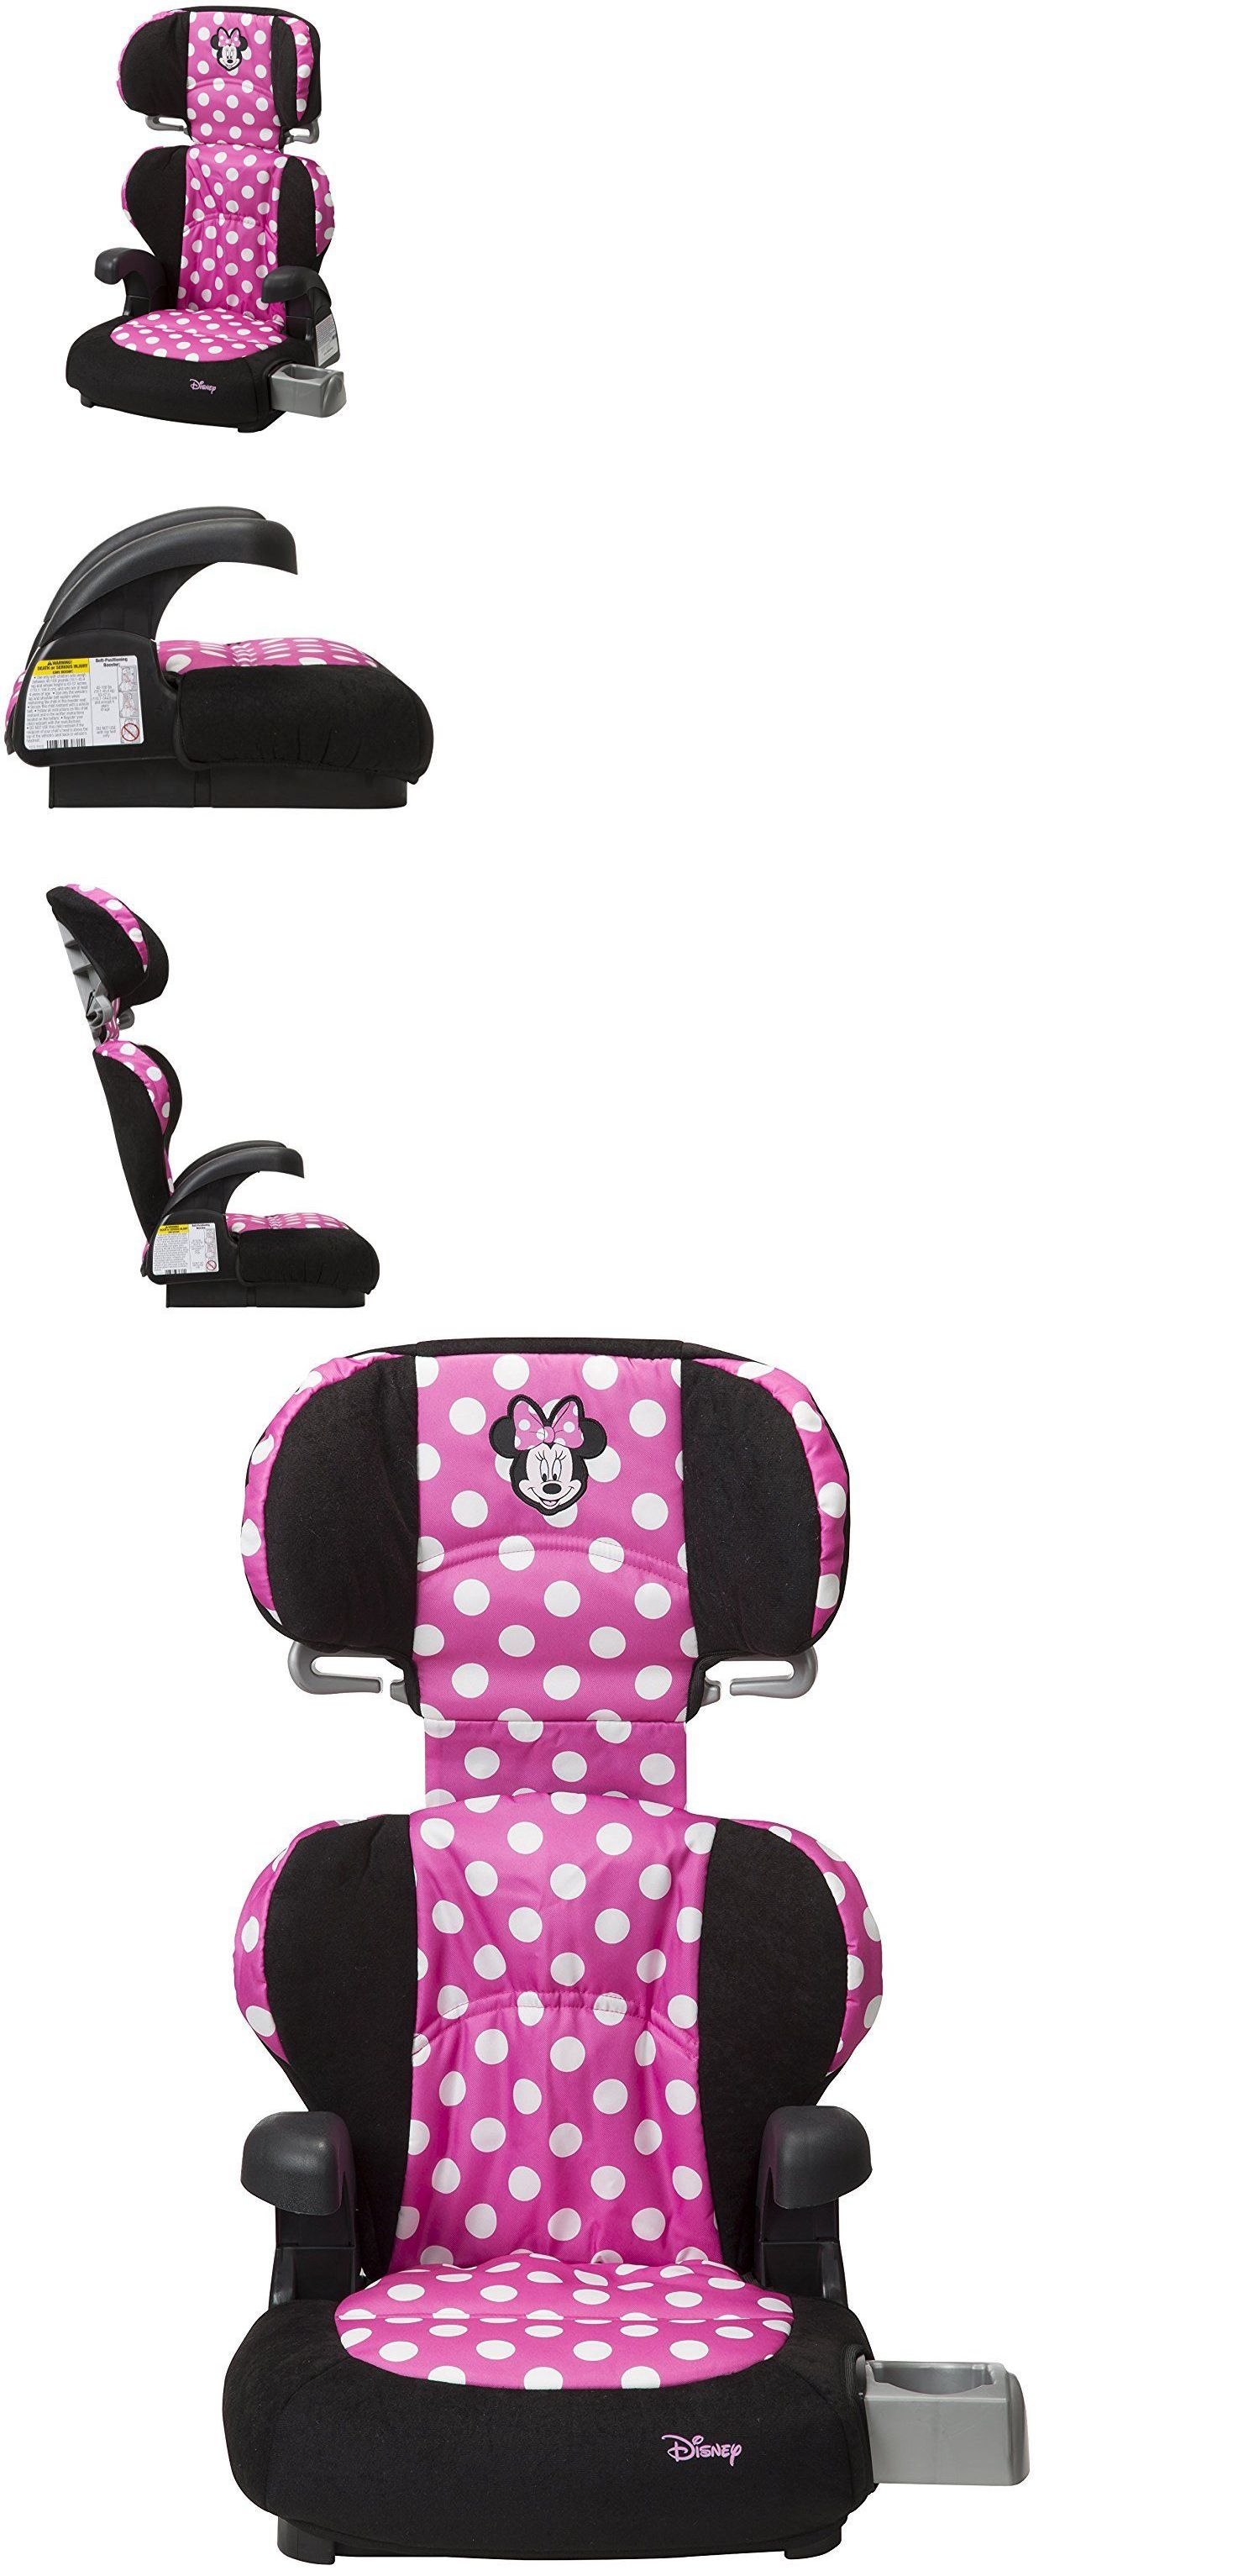 Convertible Car Seat 5 40lbs 66695 Backless Booster Removable Back Minnie Mouse Cup Holders Head Rest Pink BUY IT NOW ONLY 4765 On EBay